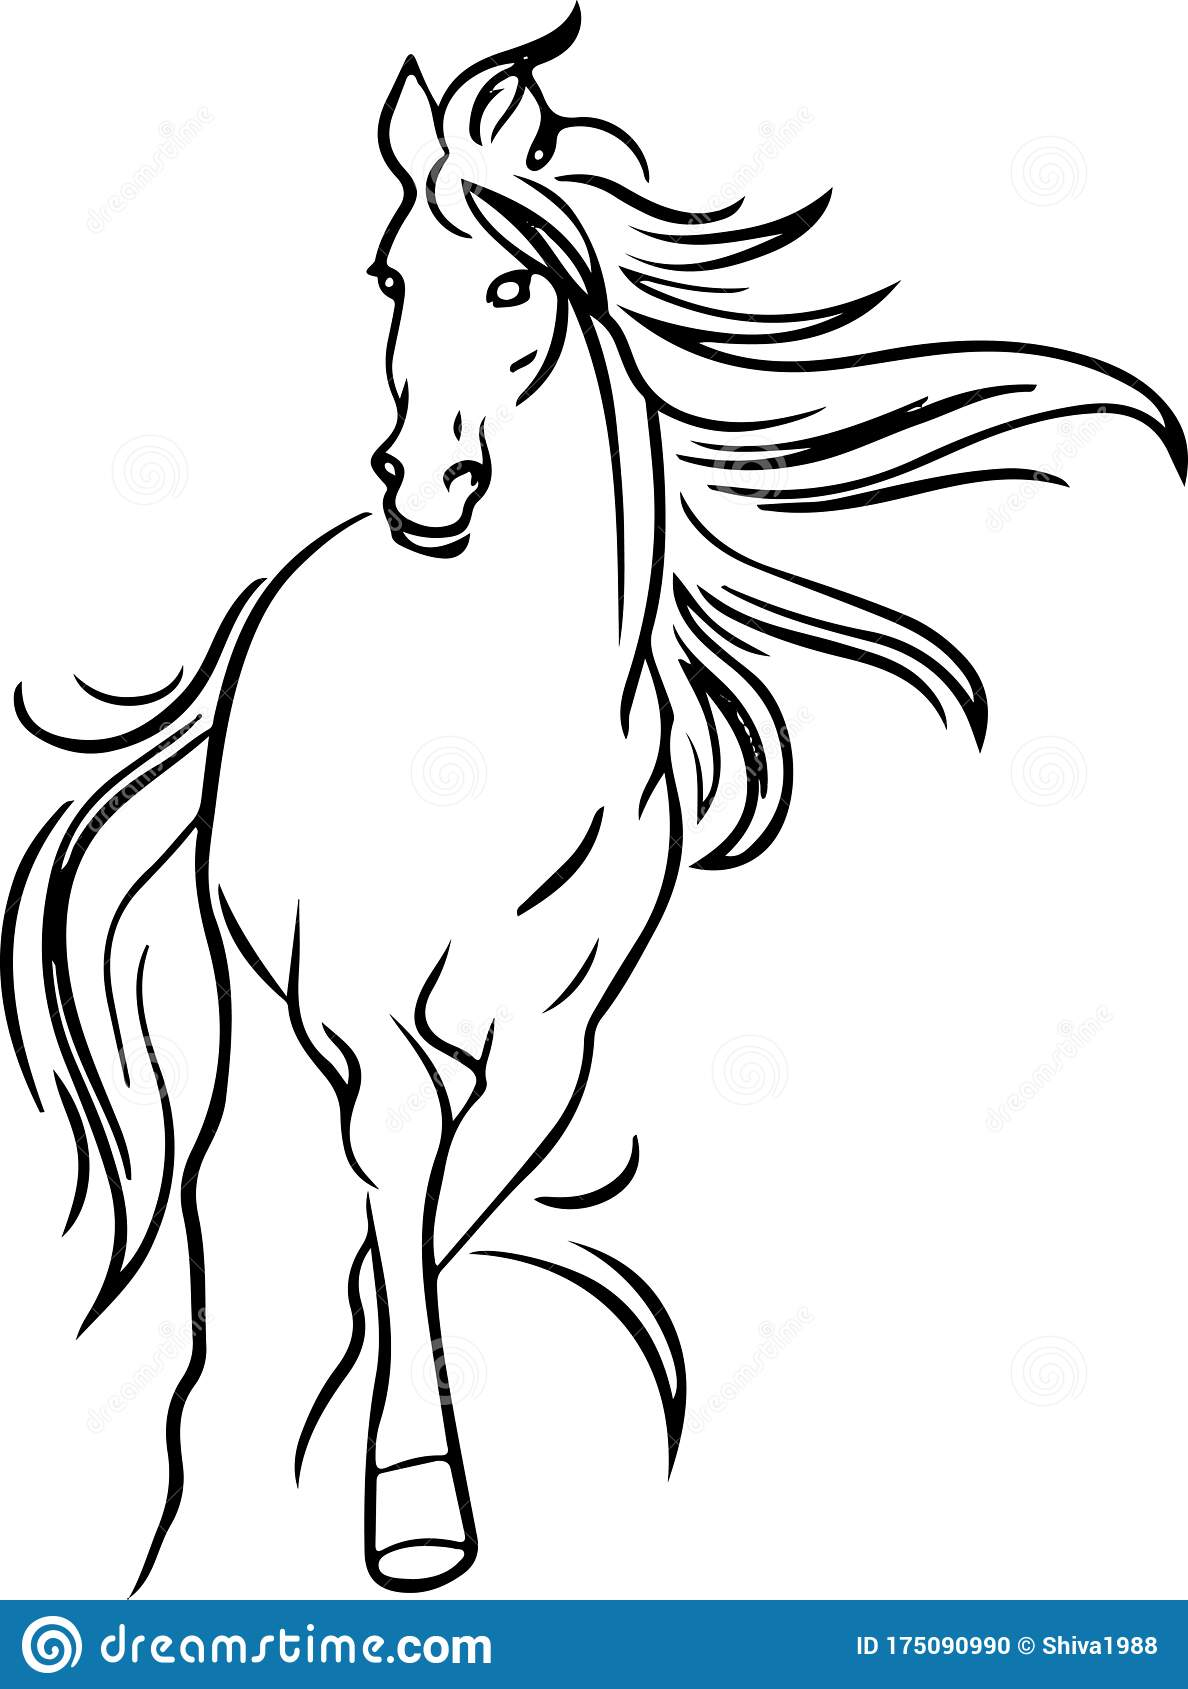 Running Horse Outline Stock Illustrations 1 974 Running Horse Outline Stock Illustrations Vectors Clipart Dreamstime